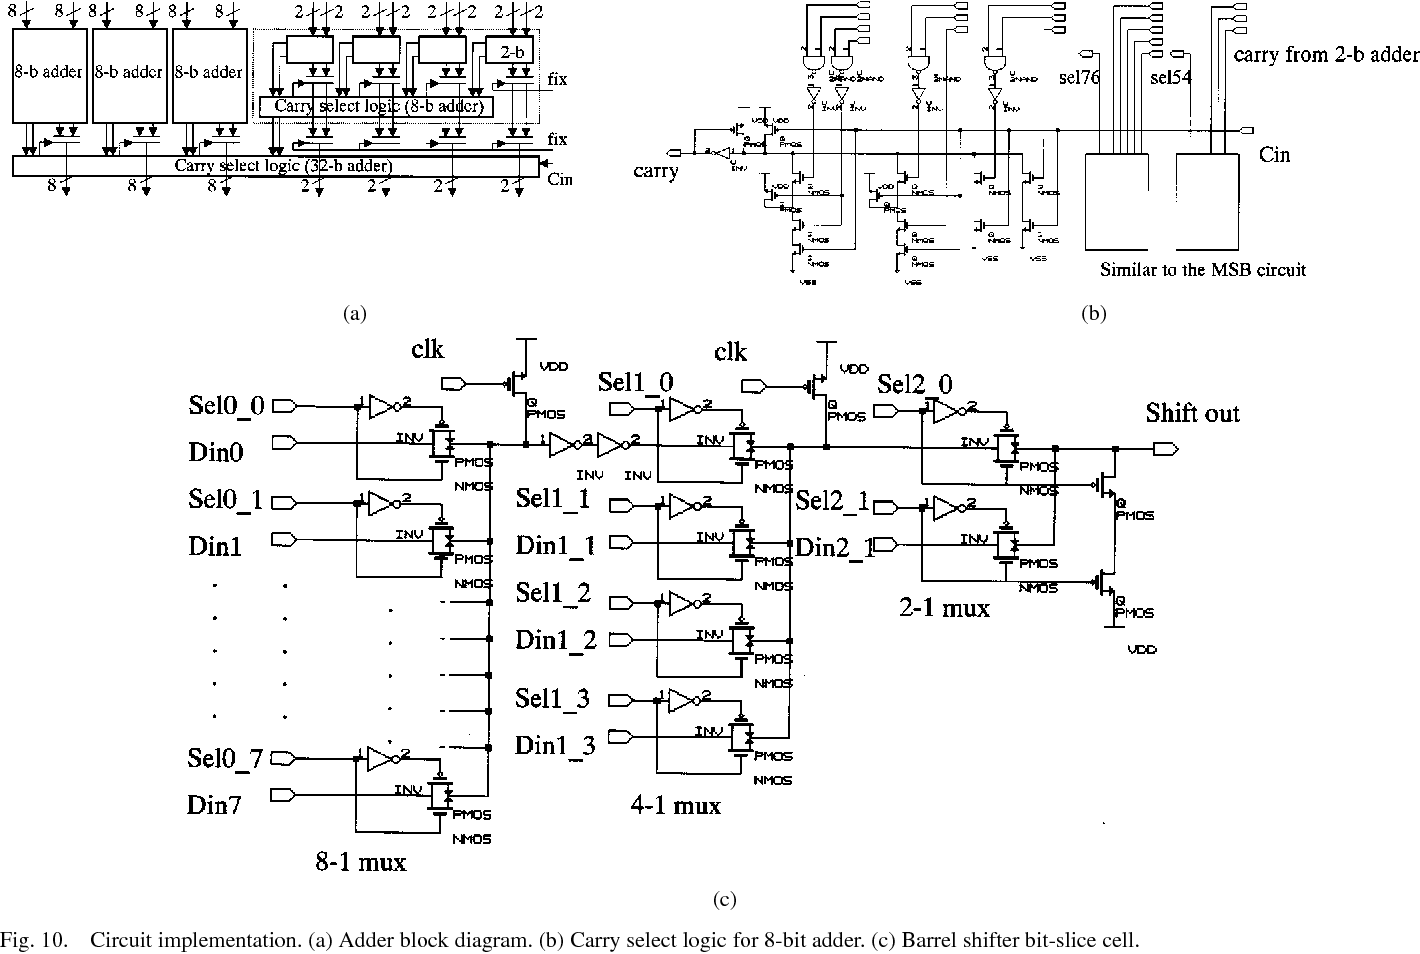 Logic Diagram For 8 Bit Adder Wiring Library Circuit Of 4 1 Multiplexer Implementation A Block B